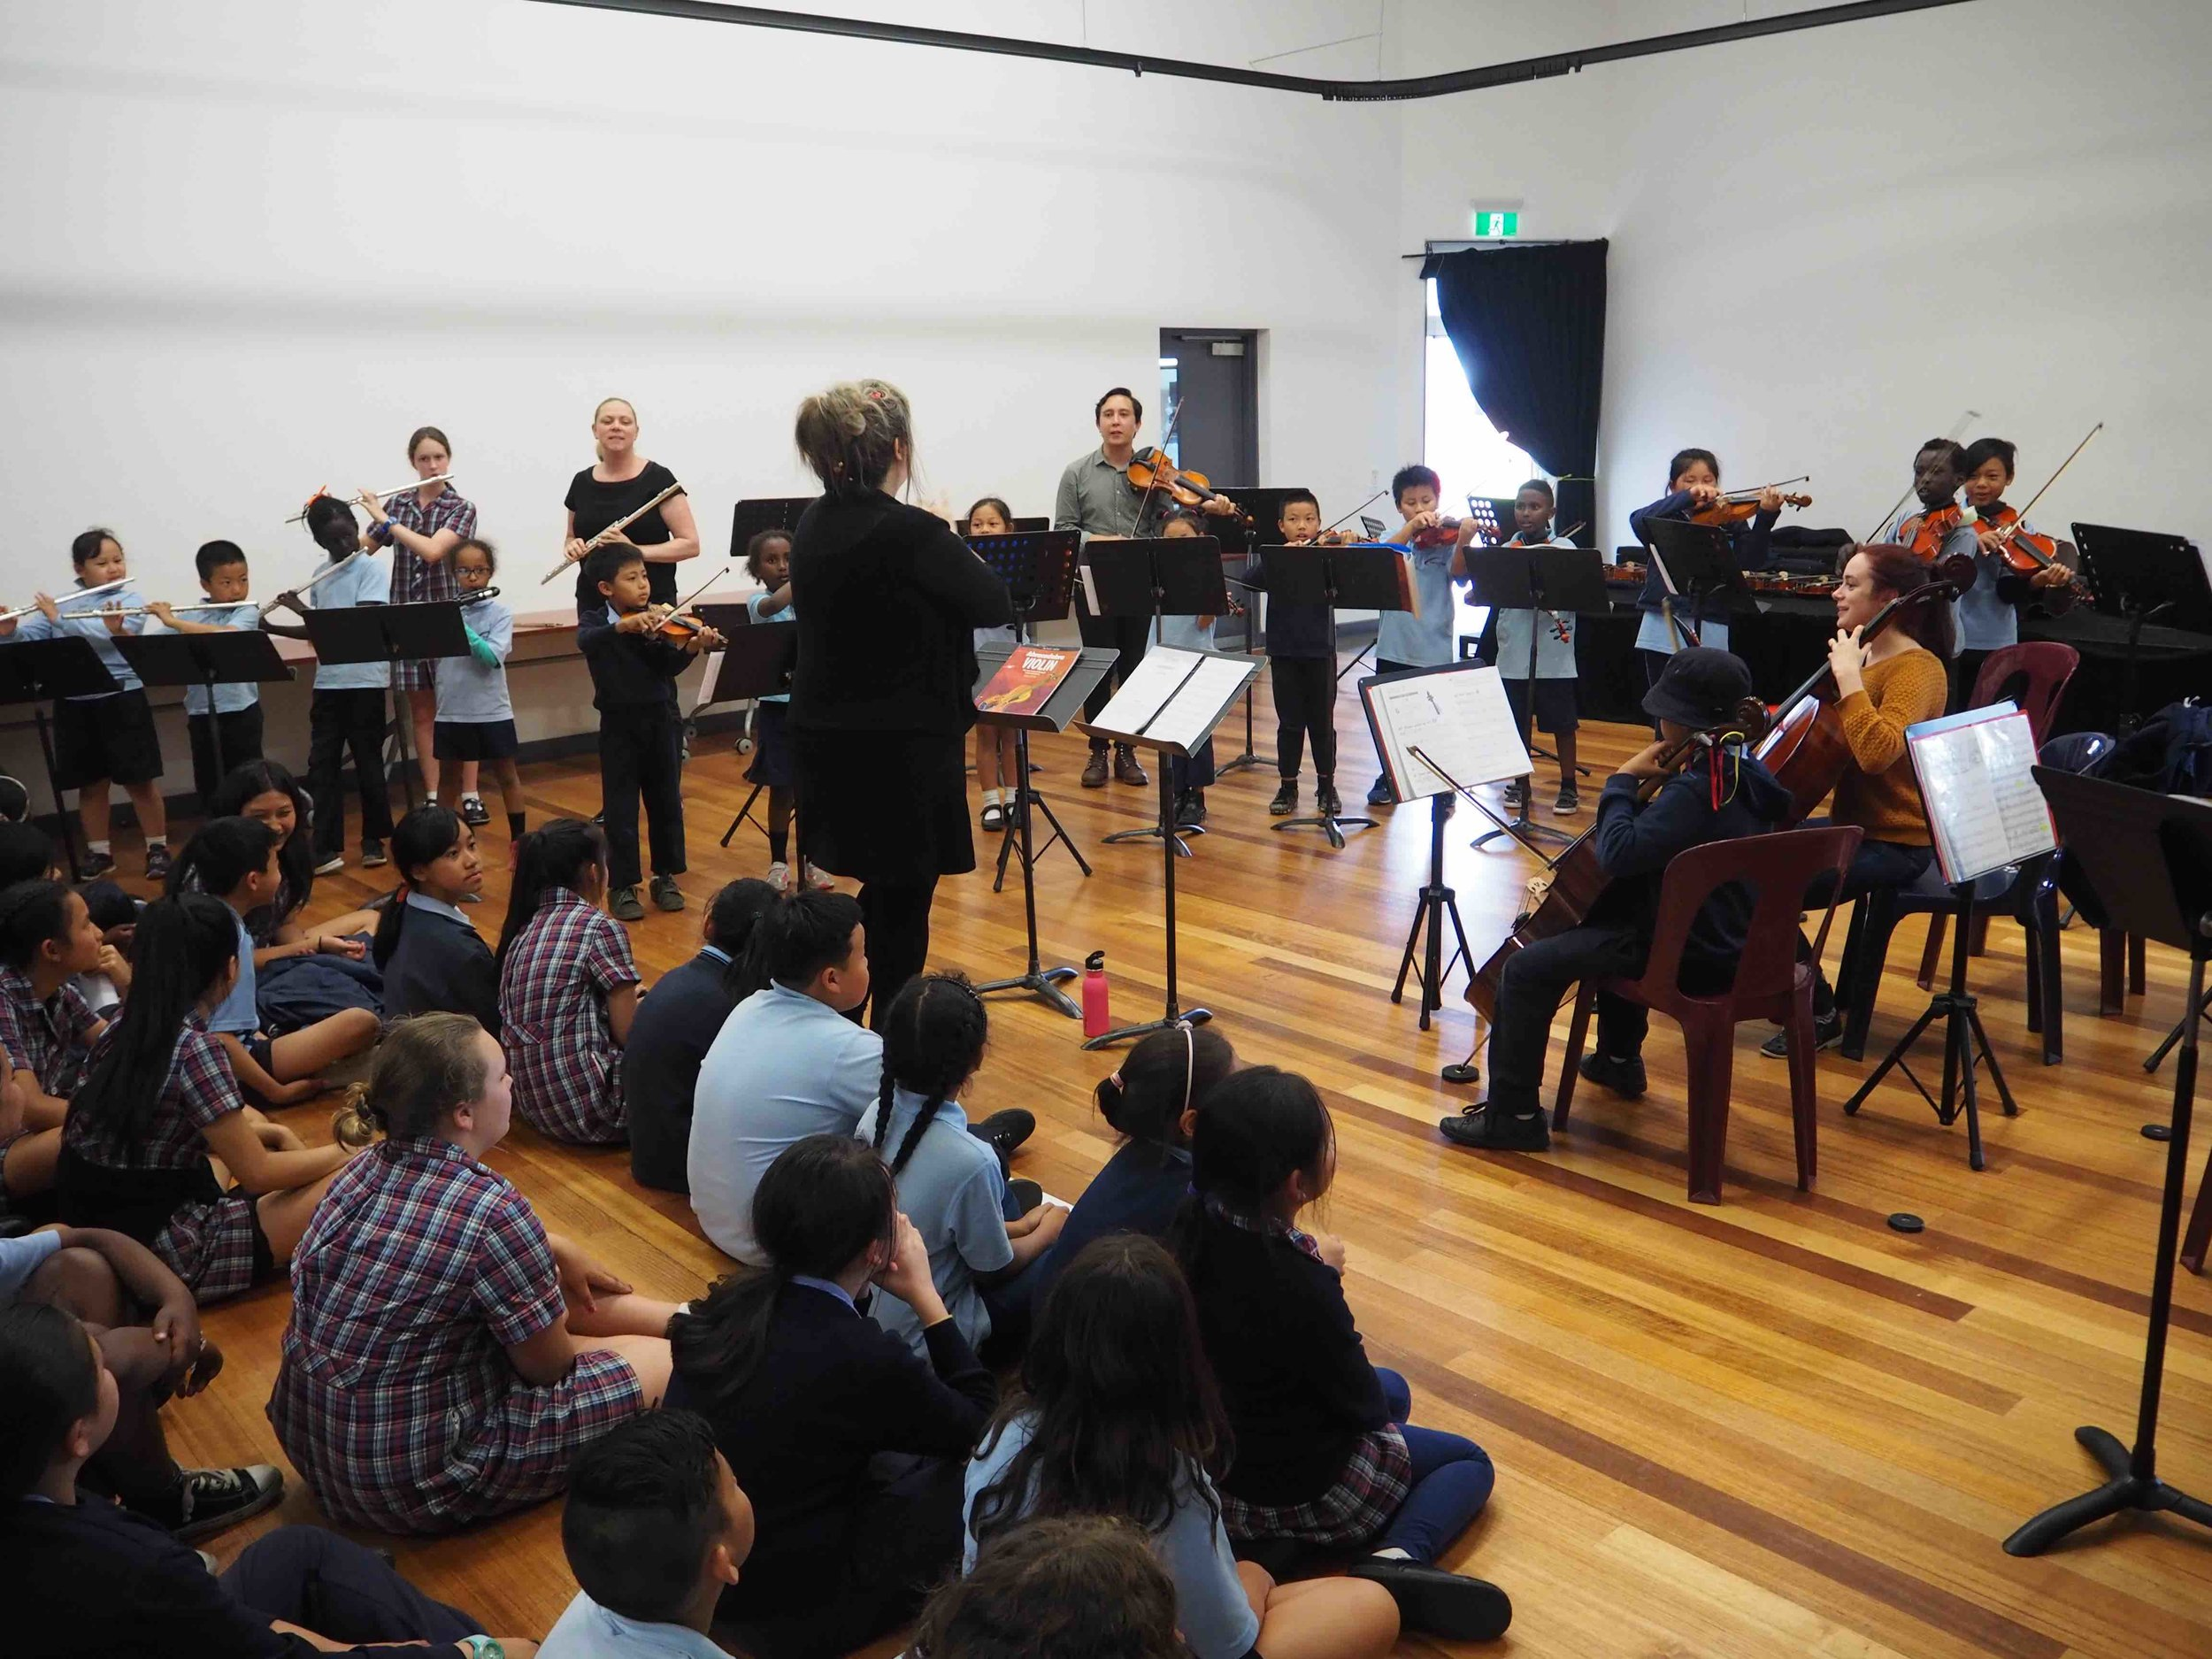 Rossini flutes, clarinets & strings all performing together.